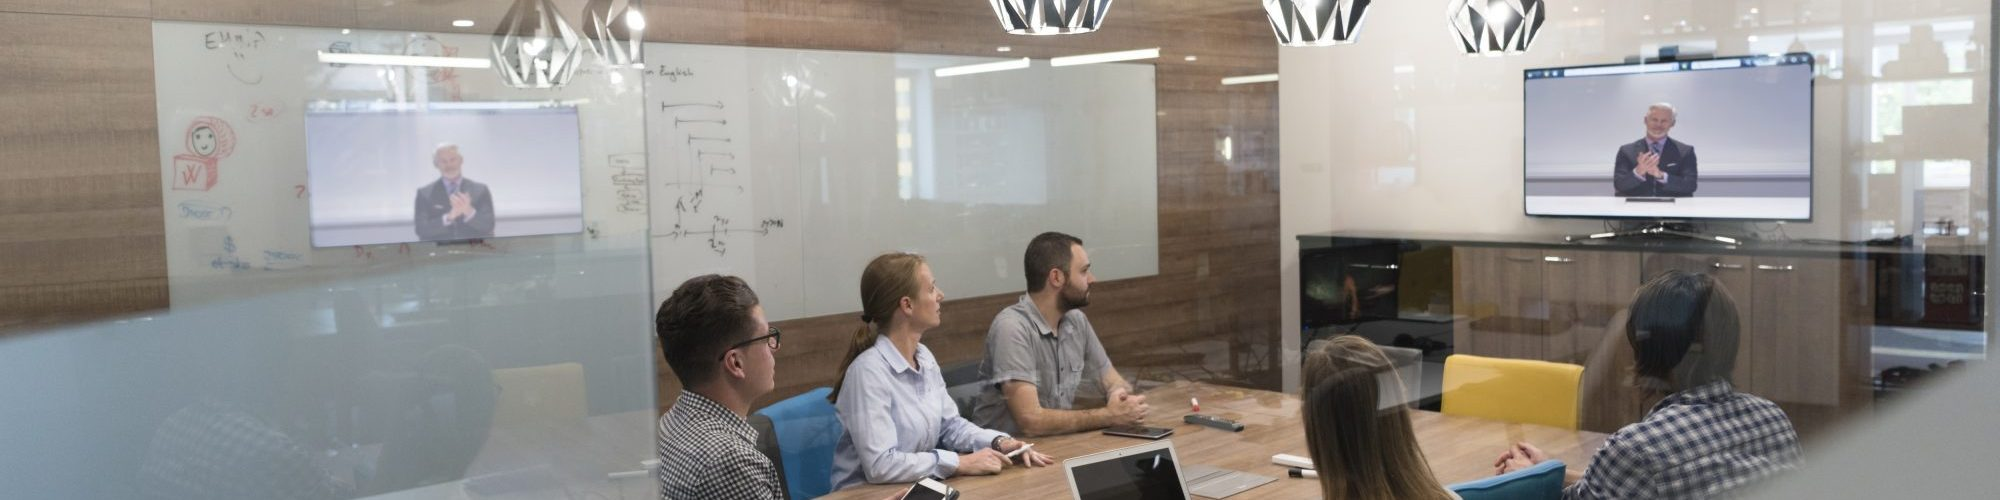 The Best Video Conferencing Hardware for your Business - 247meeting